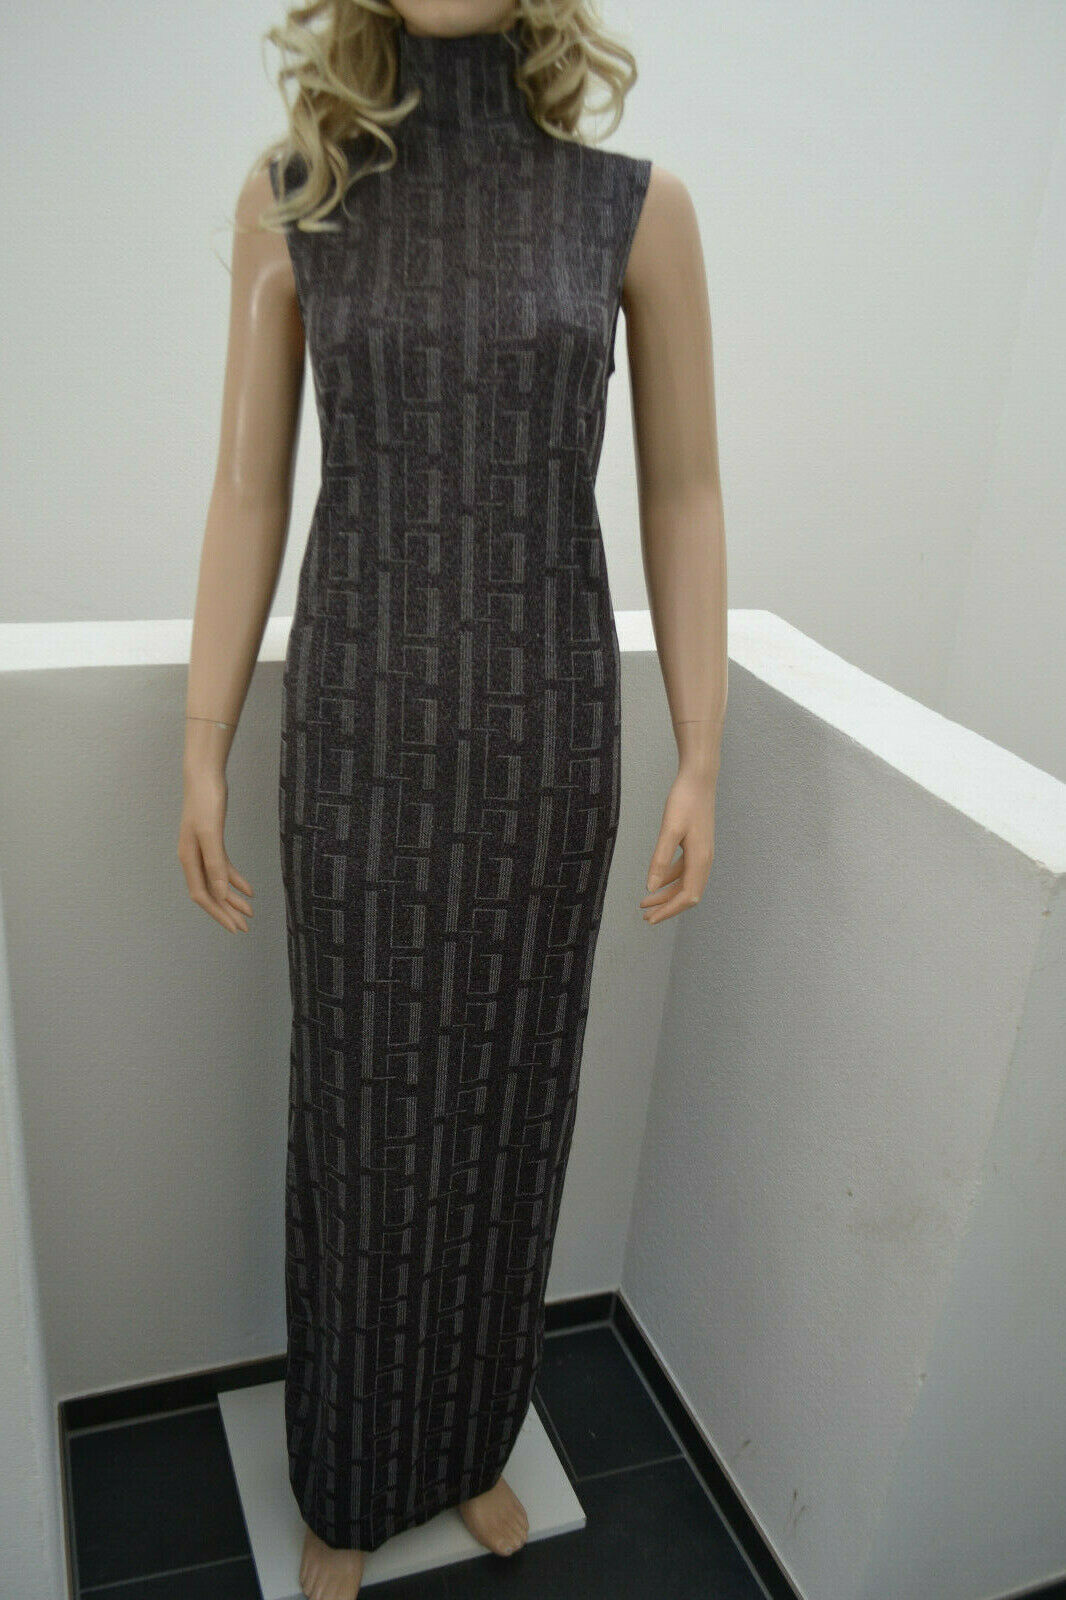 Wolford Lagerfeld Gallery Dress Kleid S Small 36 38 40